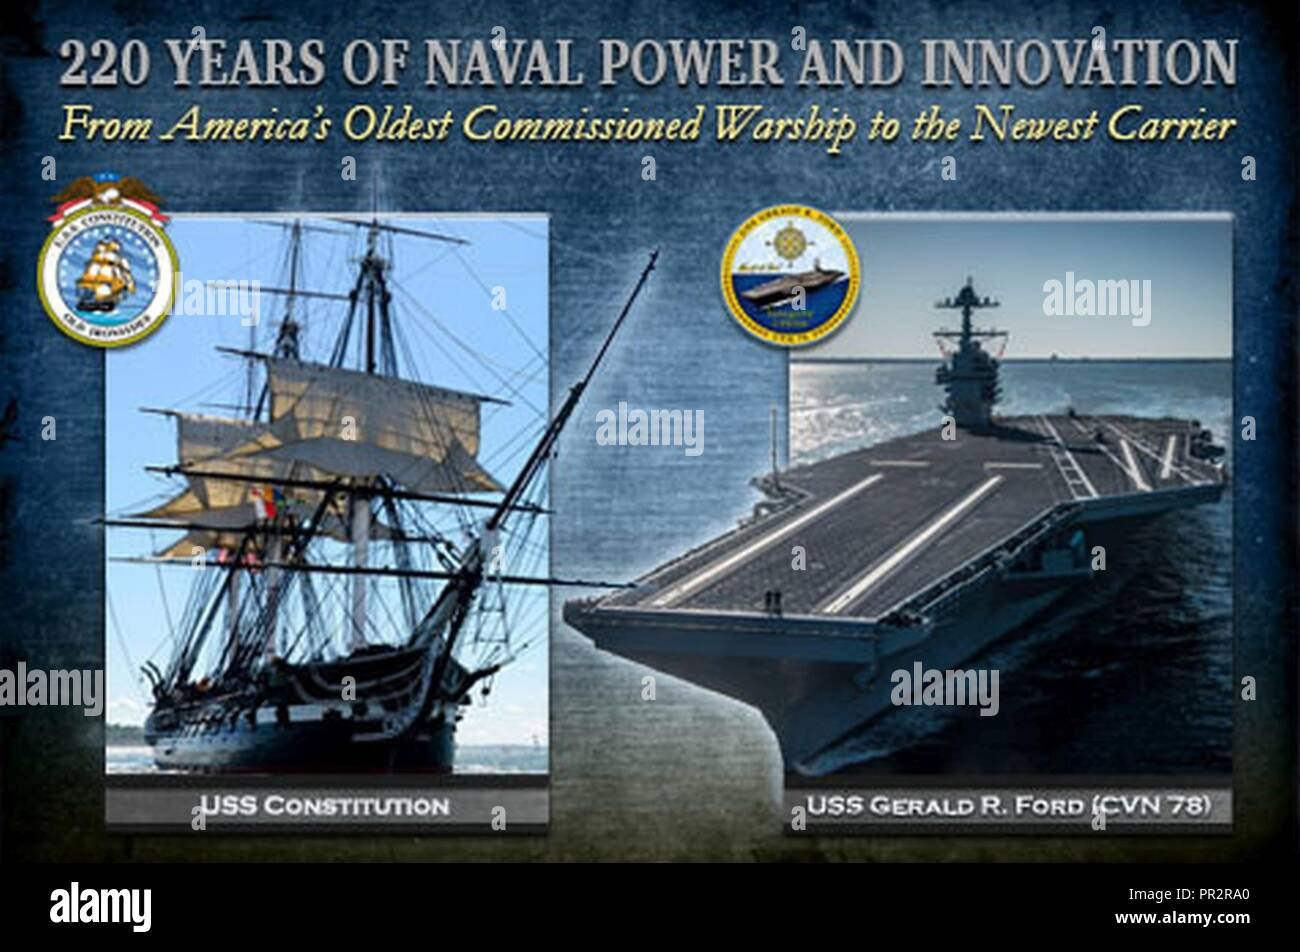 NORFOLK, Va. (July 25, 2017) Photographic illustration depicting 220 years of naval power and innovation with USS Constitution and aircraft carrier USS Gerald R. Ford (CVN 78). Constitution, America's Ship of State and the country's oldest commissioned warship, completed a two-year restoration period before returning to the water on July 23. Ford, the lead ship of the Ford-class aircraft carriers and the first new U.S. aircraft carrier design in over 40 years, was commissioned on July 22. - Stock Image